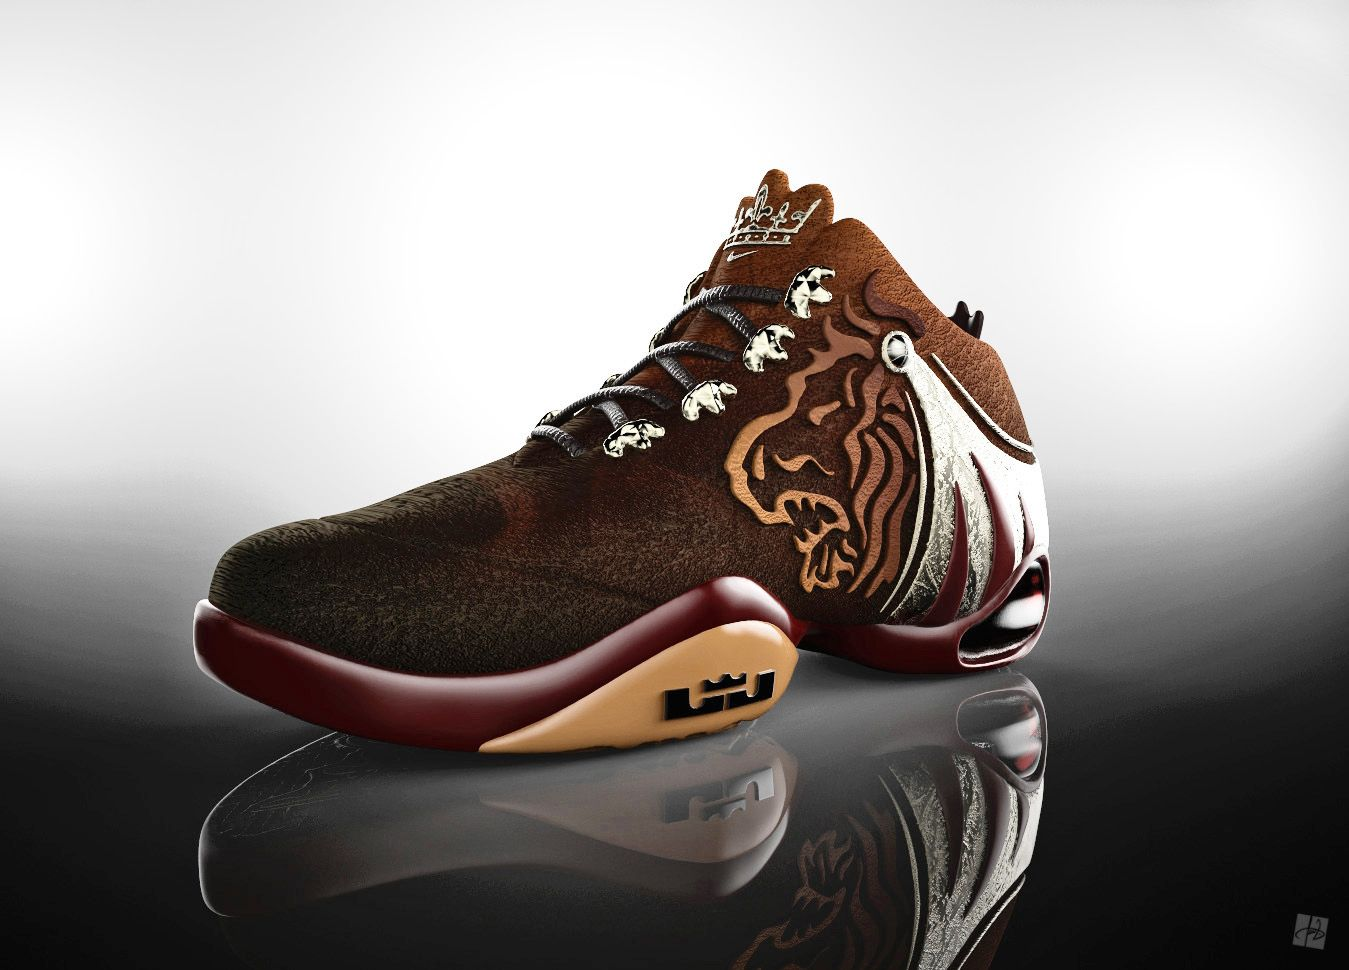 Nike LeBron James basketball shoe design and 3D visualization For more  images with different view visit 8d2c7372d2